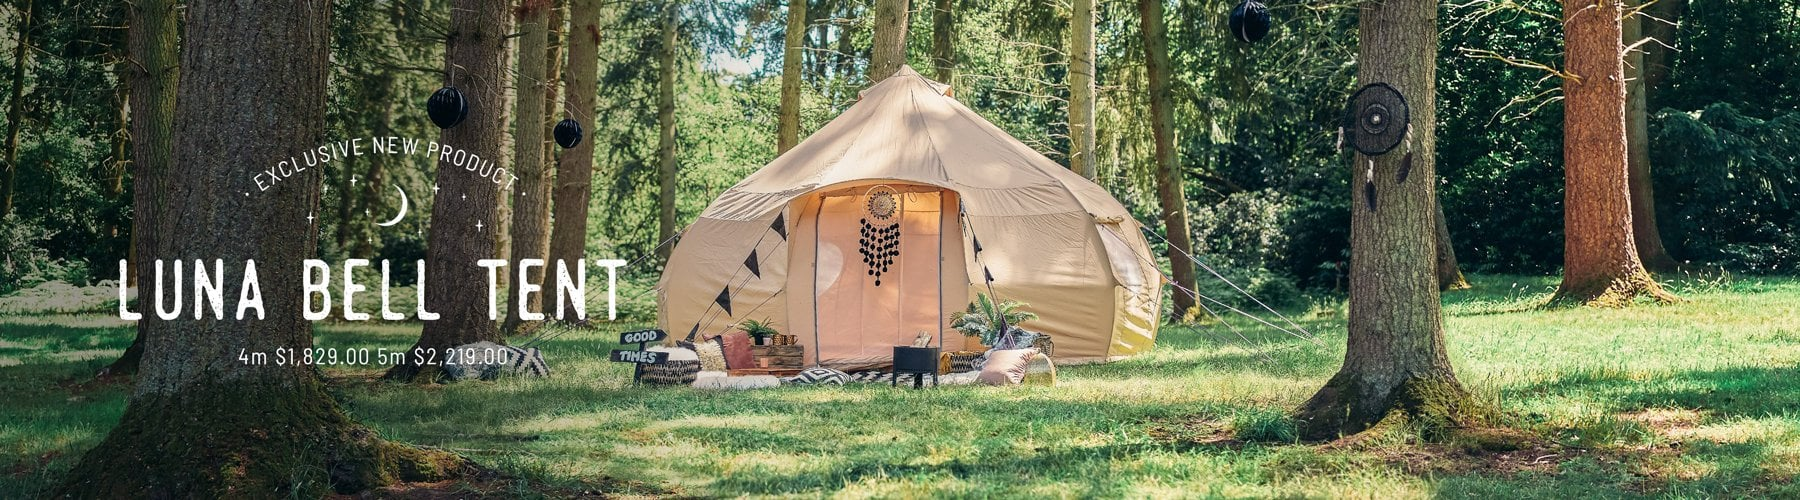 The Luna Bell Tent